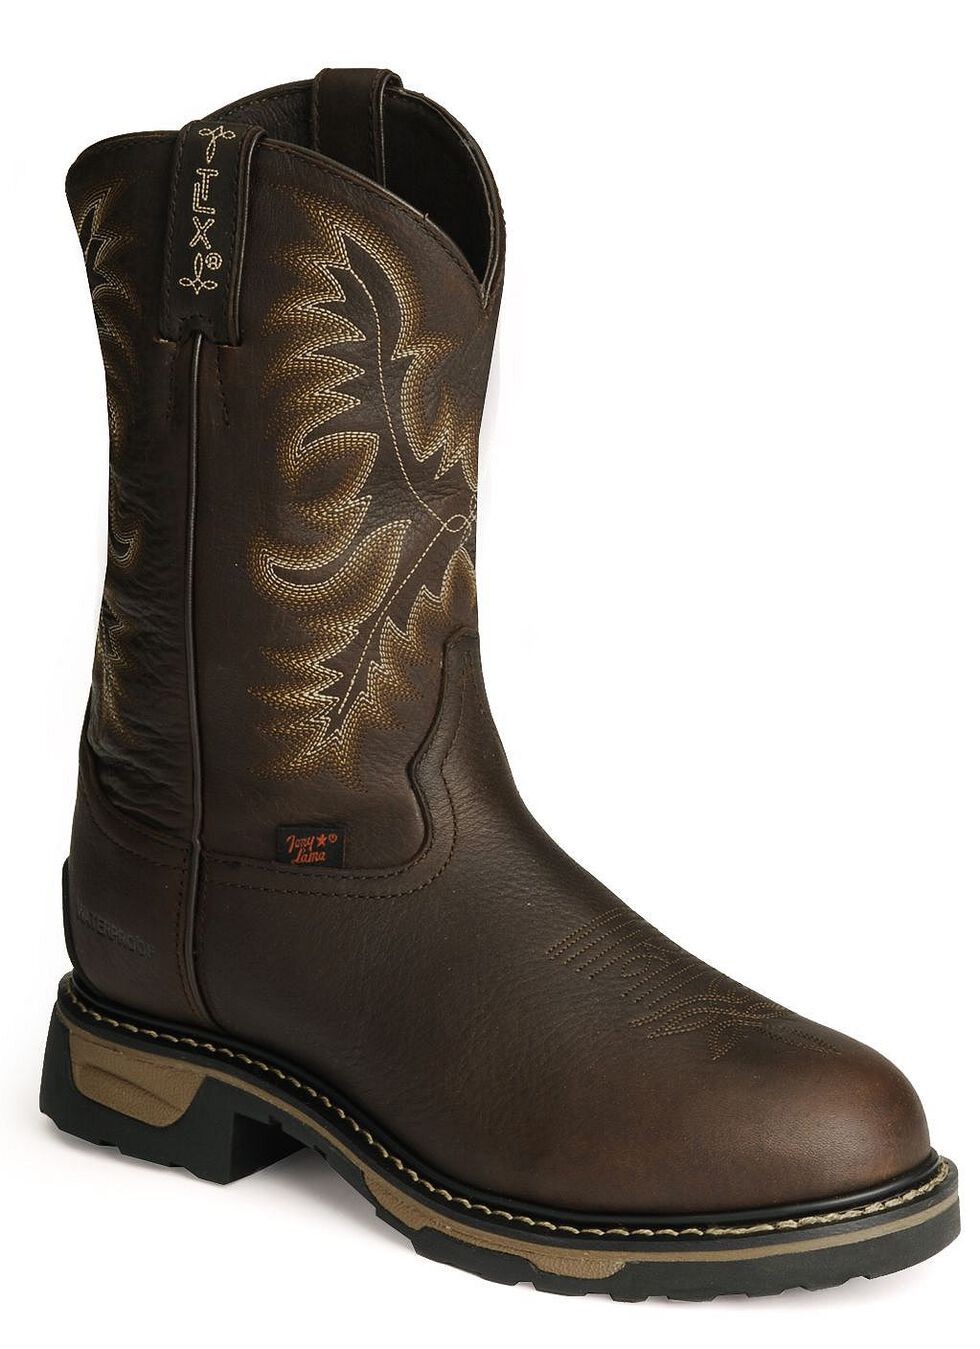 Tony Lama TLX Waterproof Pitstop Leather Work Boots - Steel Toe, Briar, hi-res